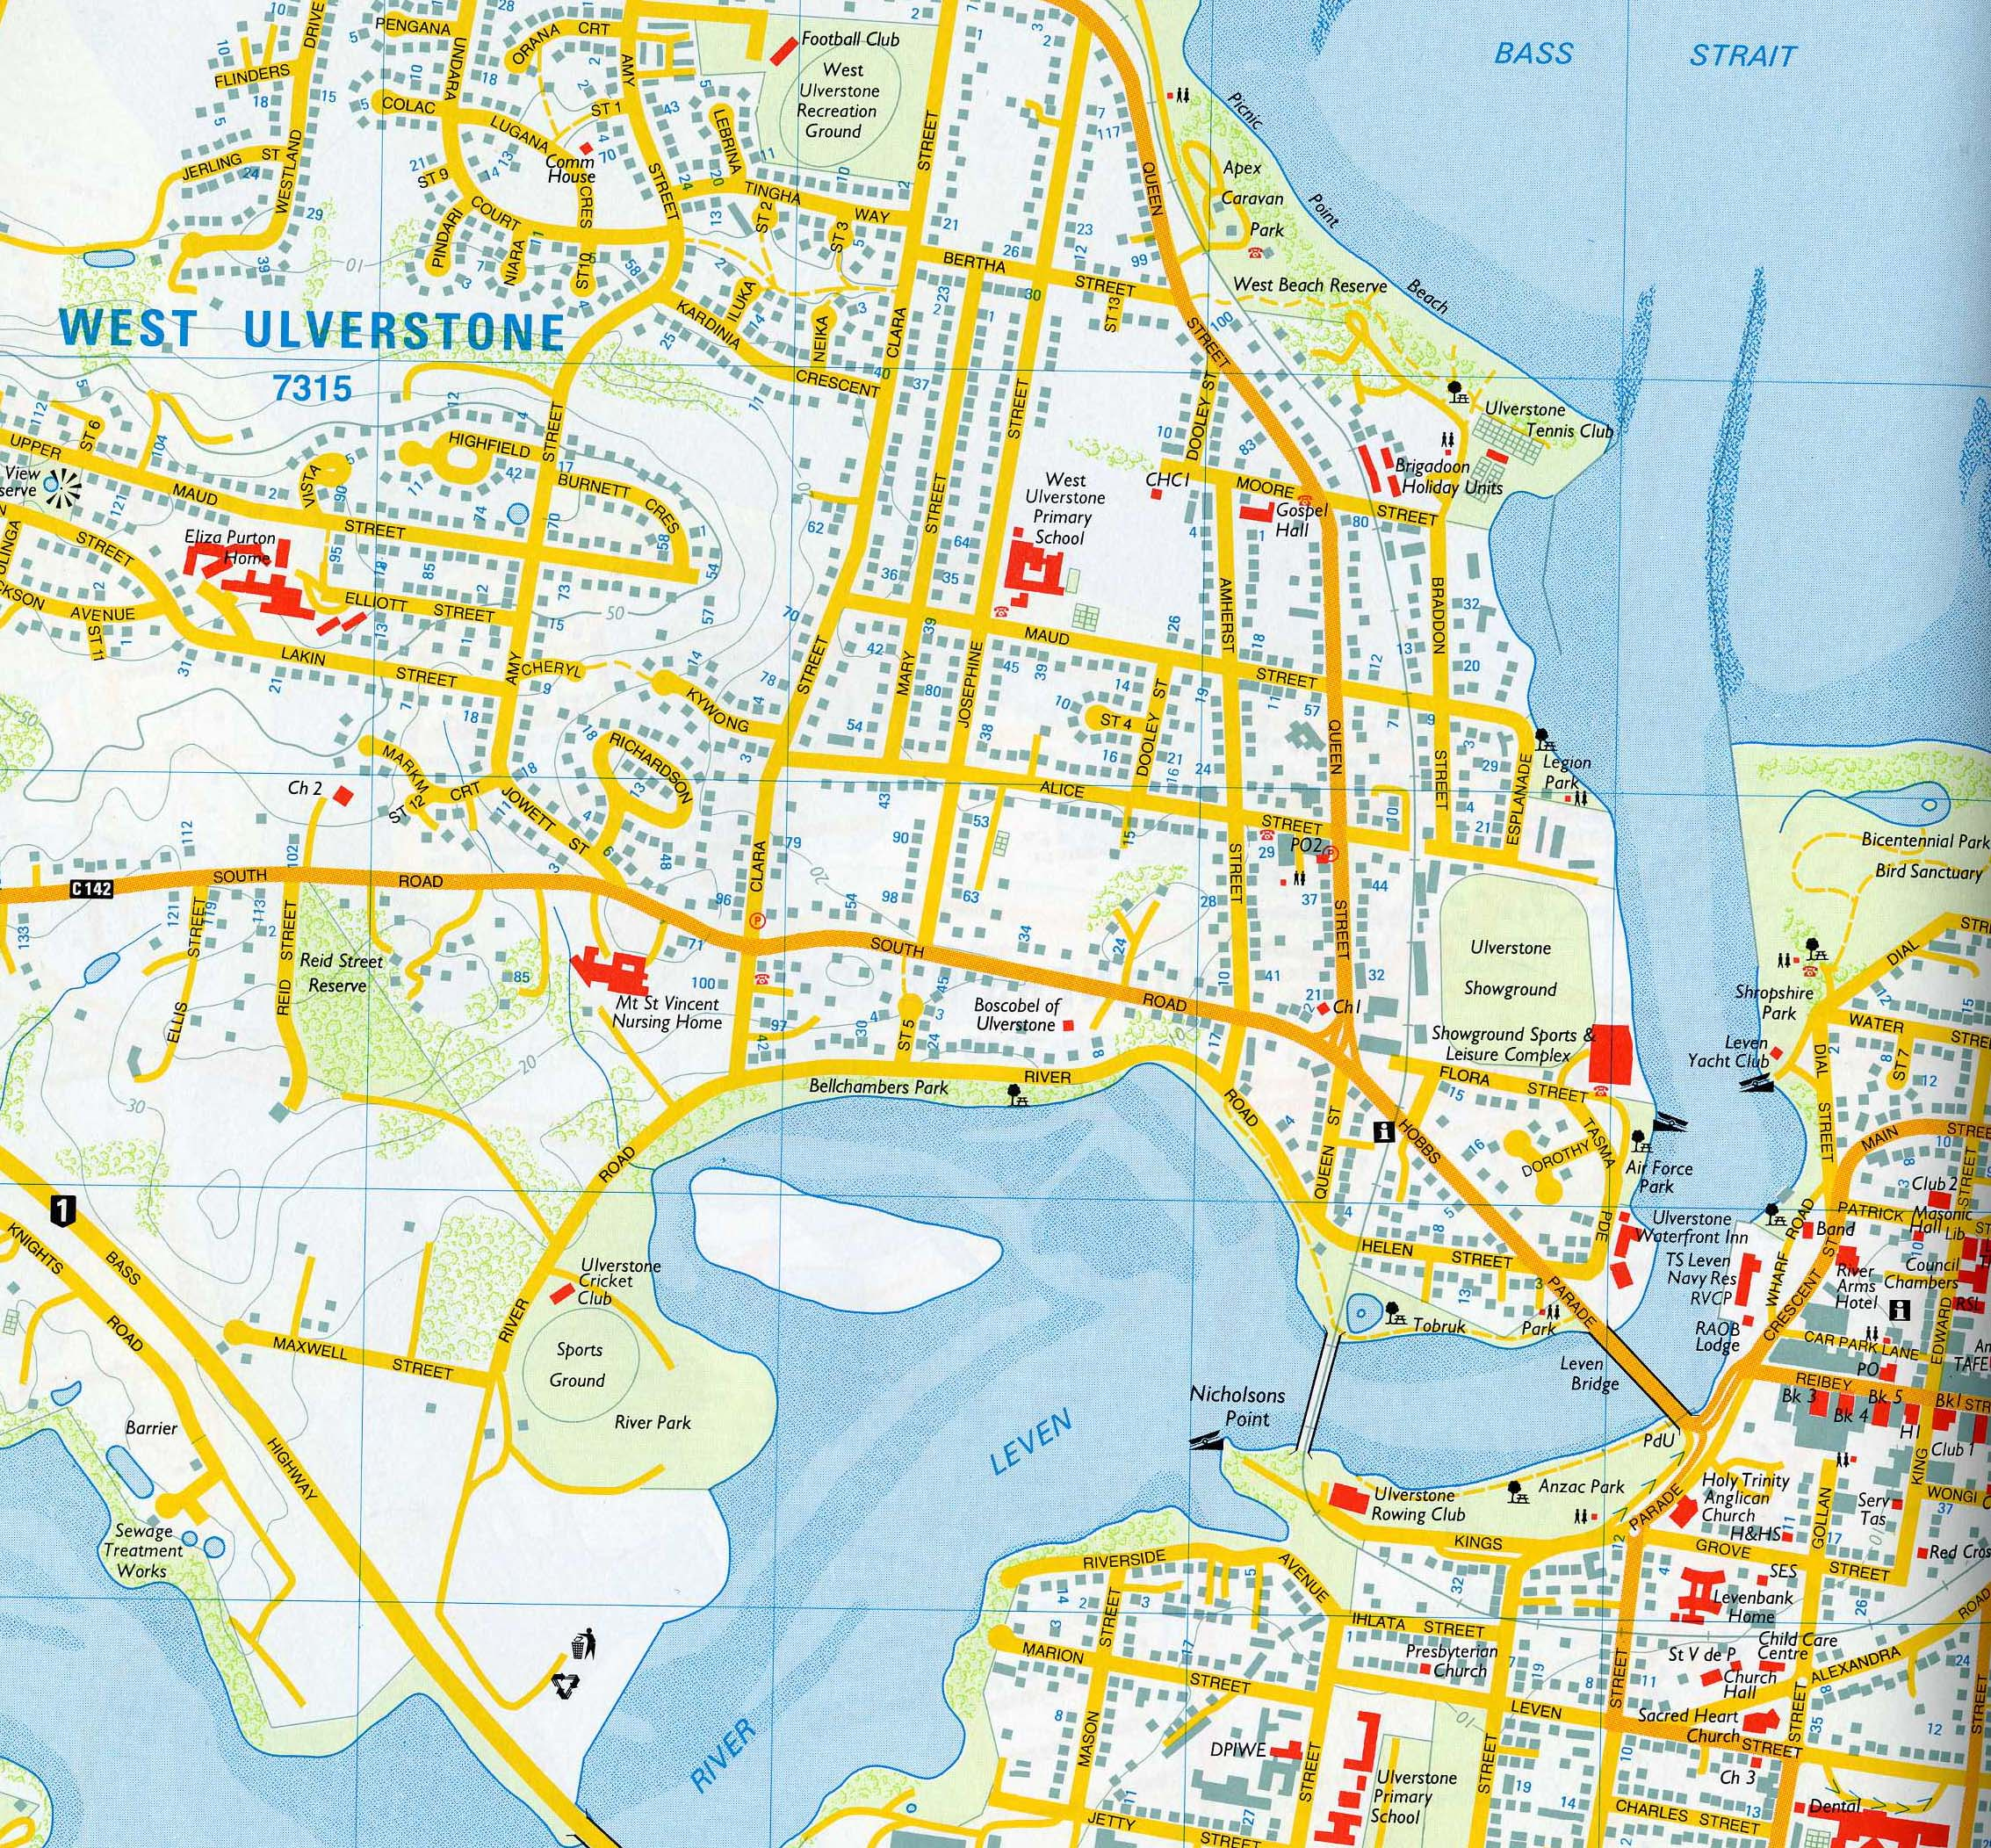 west ulverstone street map